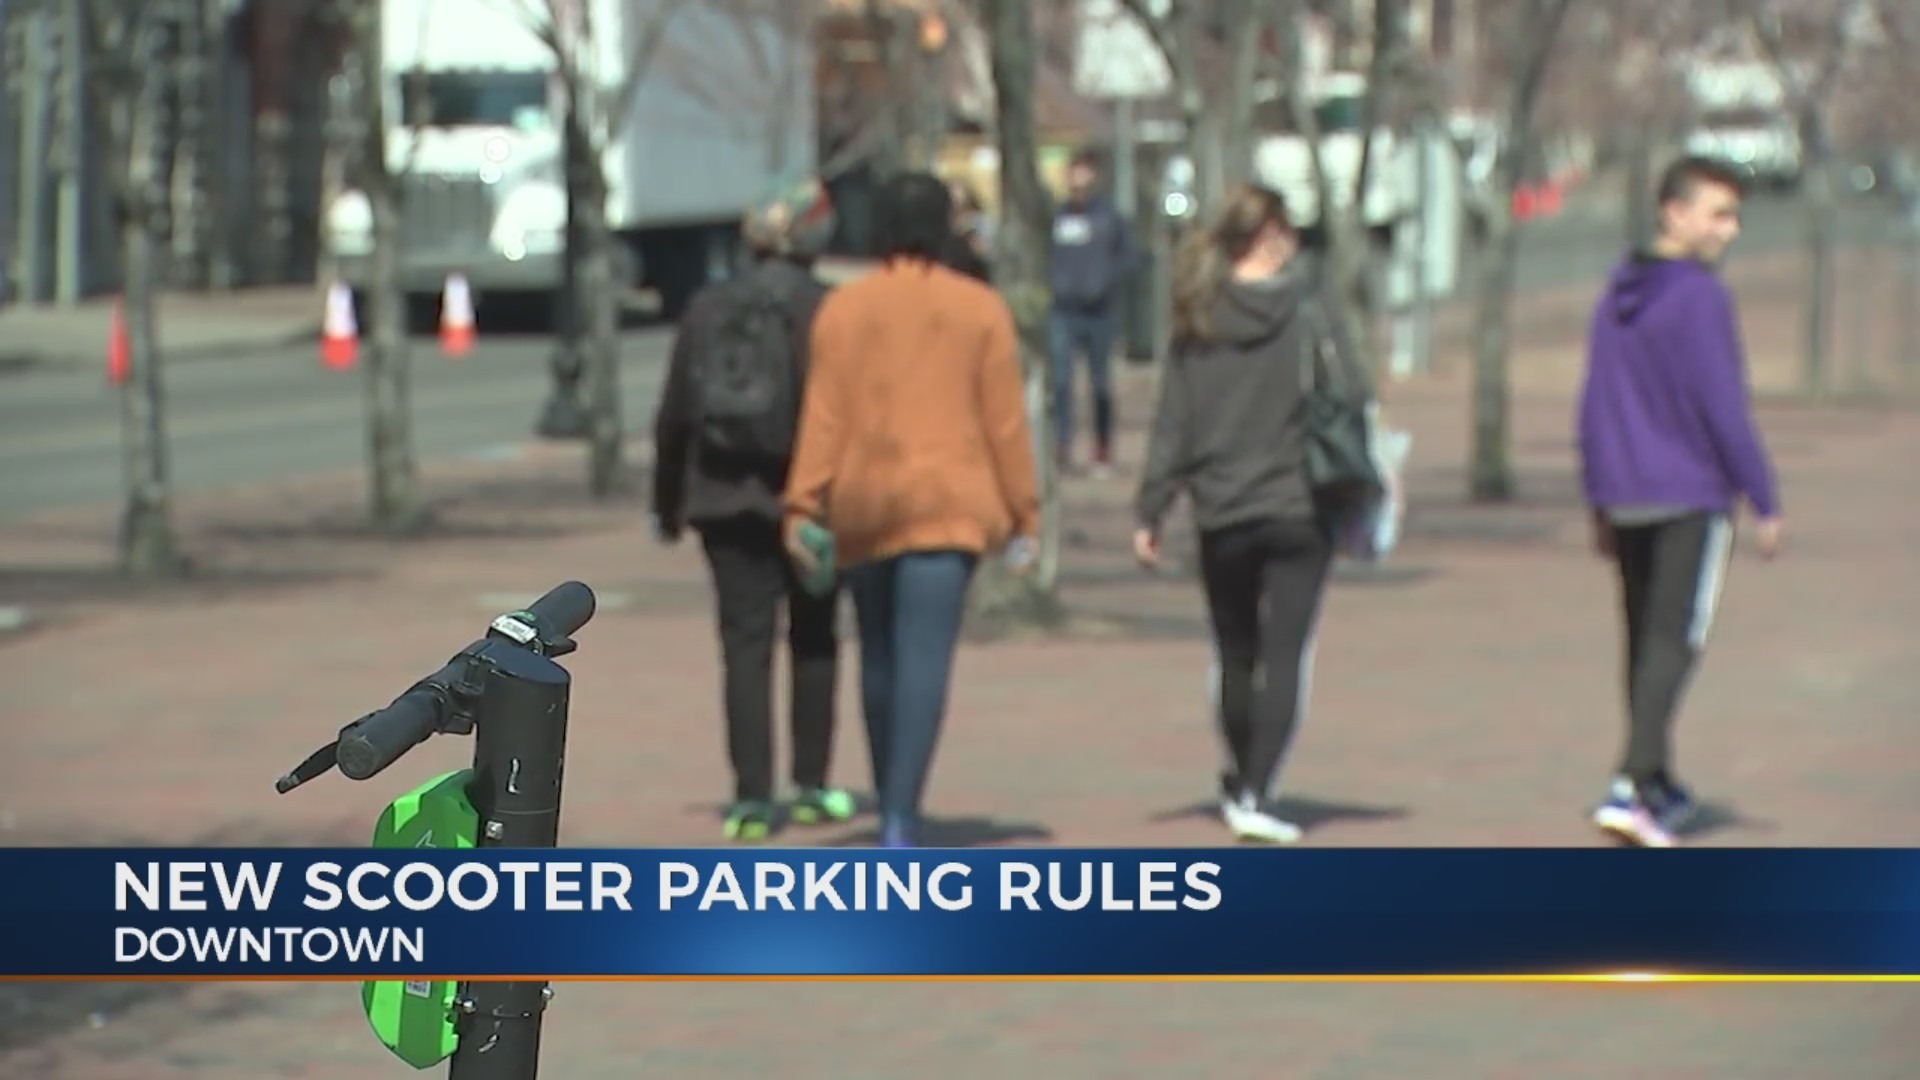 New_scooter_parking_rules_0_20190320220959